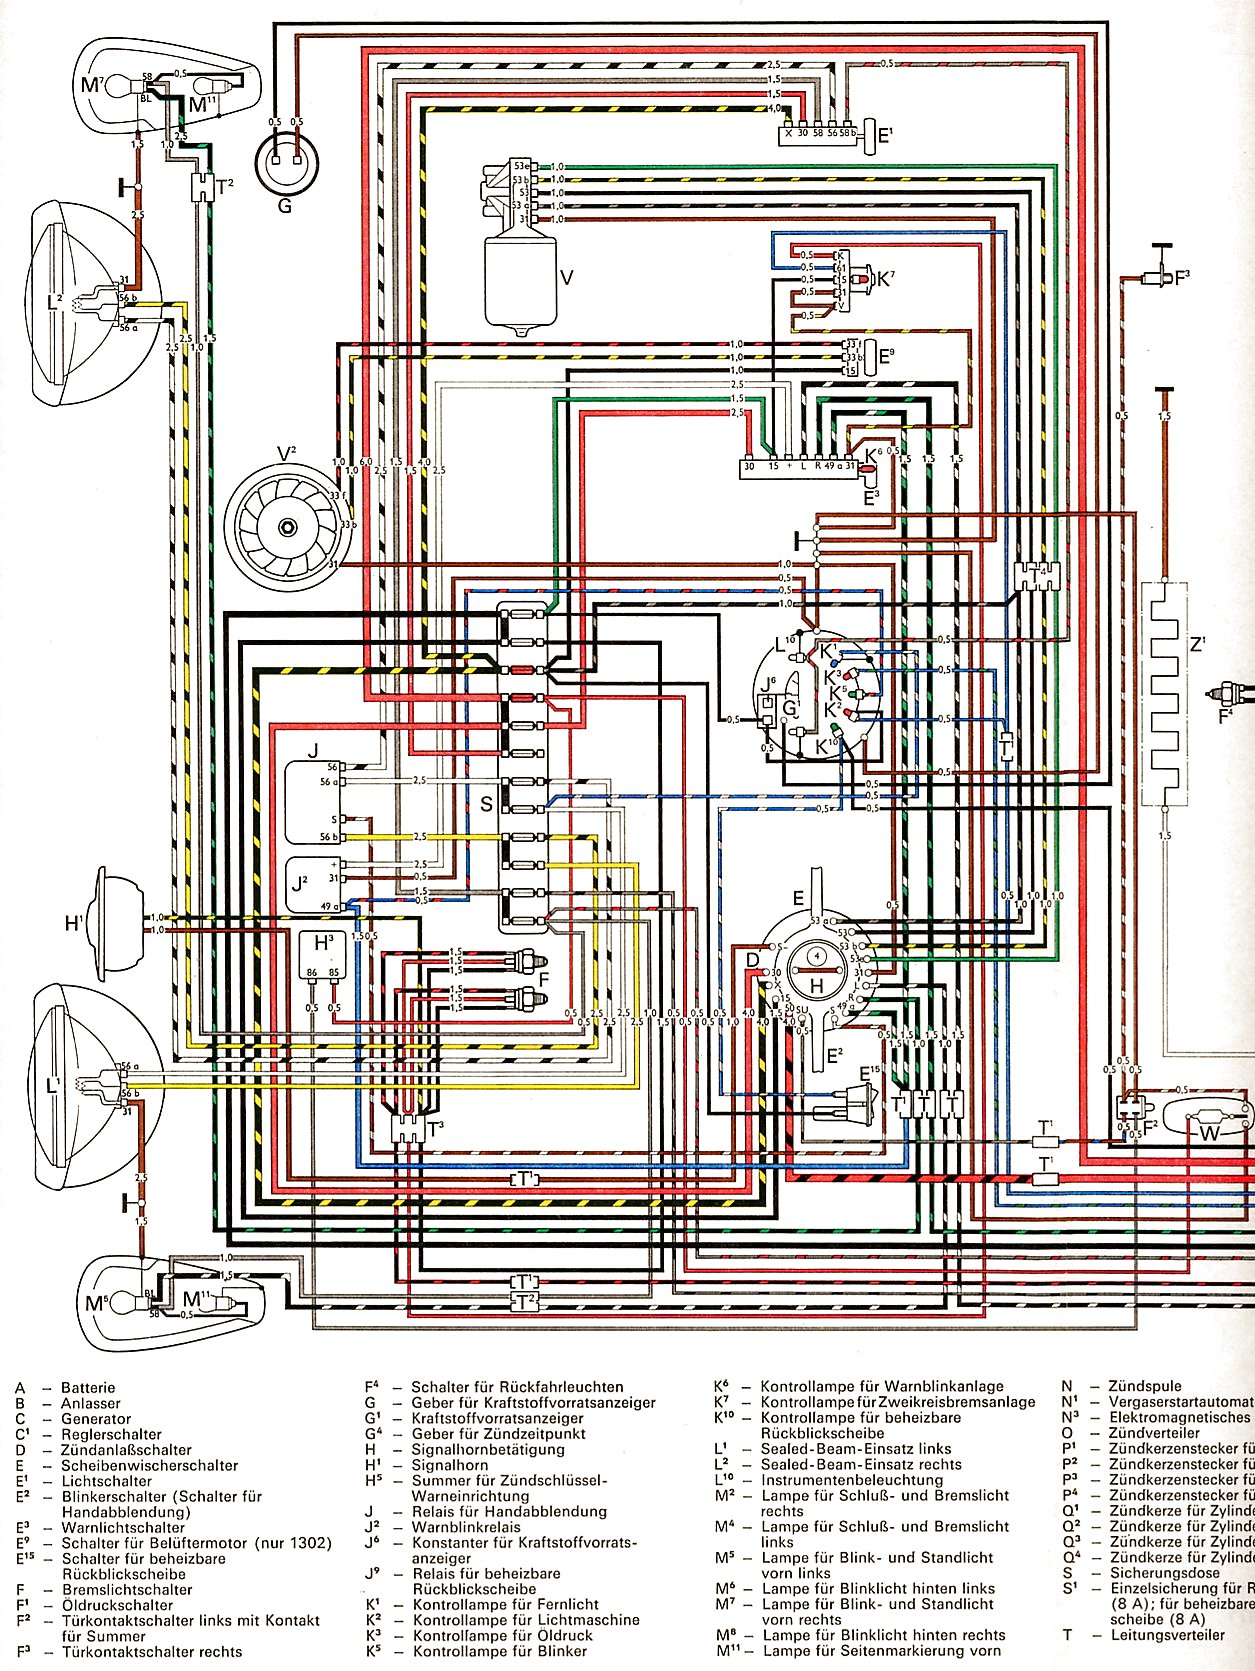 Vw Thing Fuse Box Diagram Reveolution Of Wiring 1997 Jetta 1974 Layout Diagrams U2022 Rh Laurafinlay Co Uk 2004